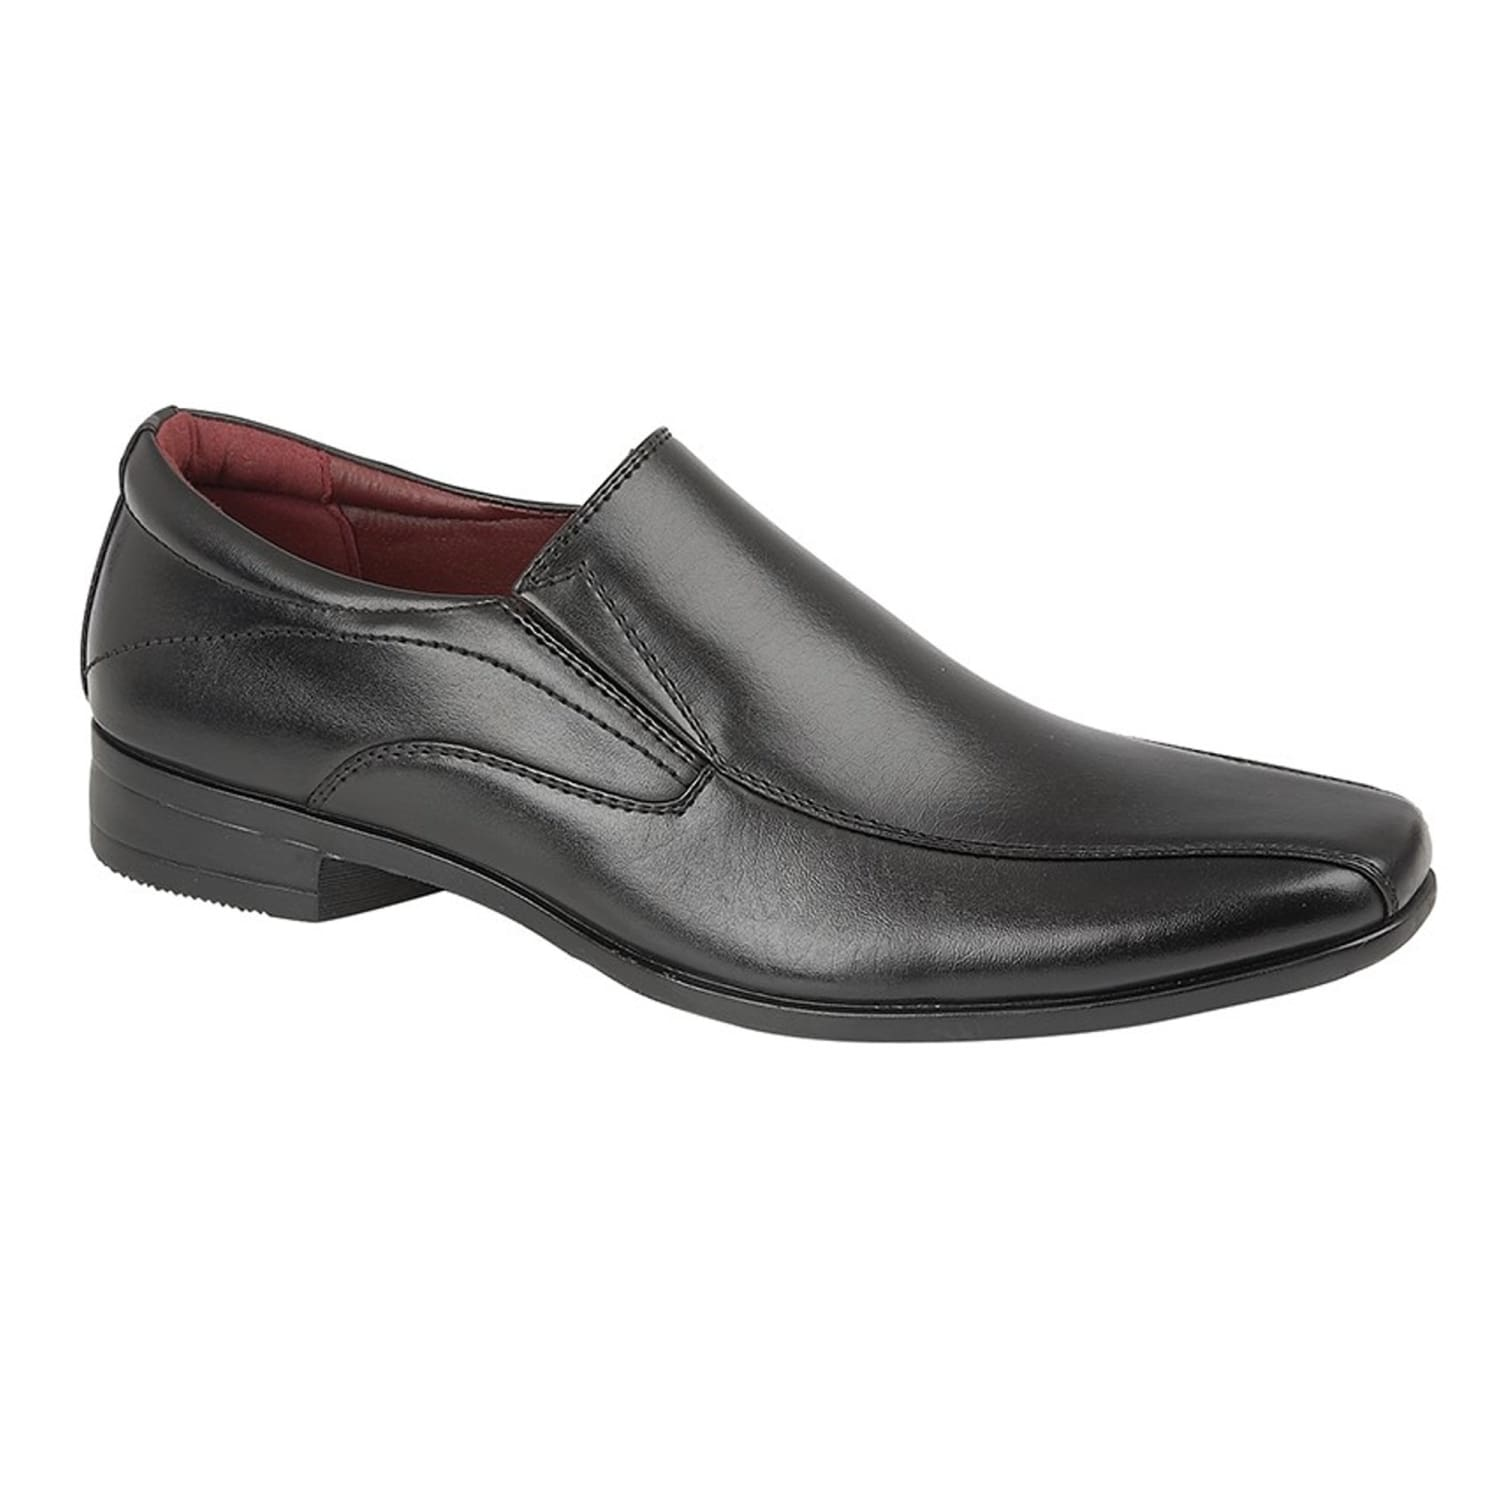 U.S.Brass Shoes - M501 - Black 1